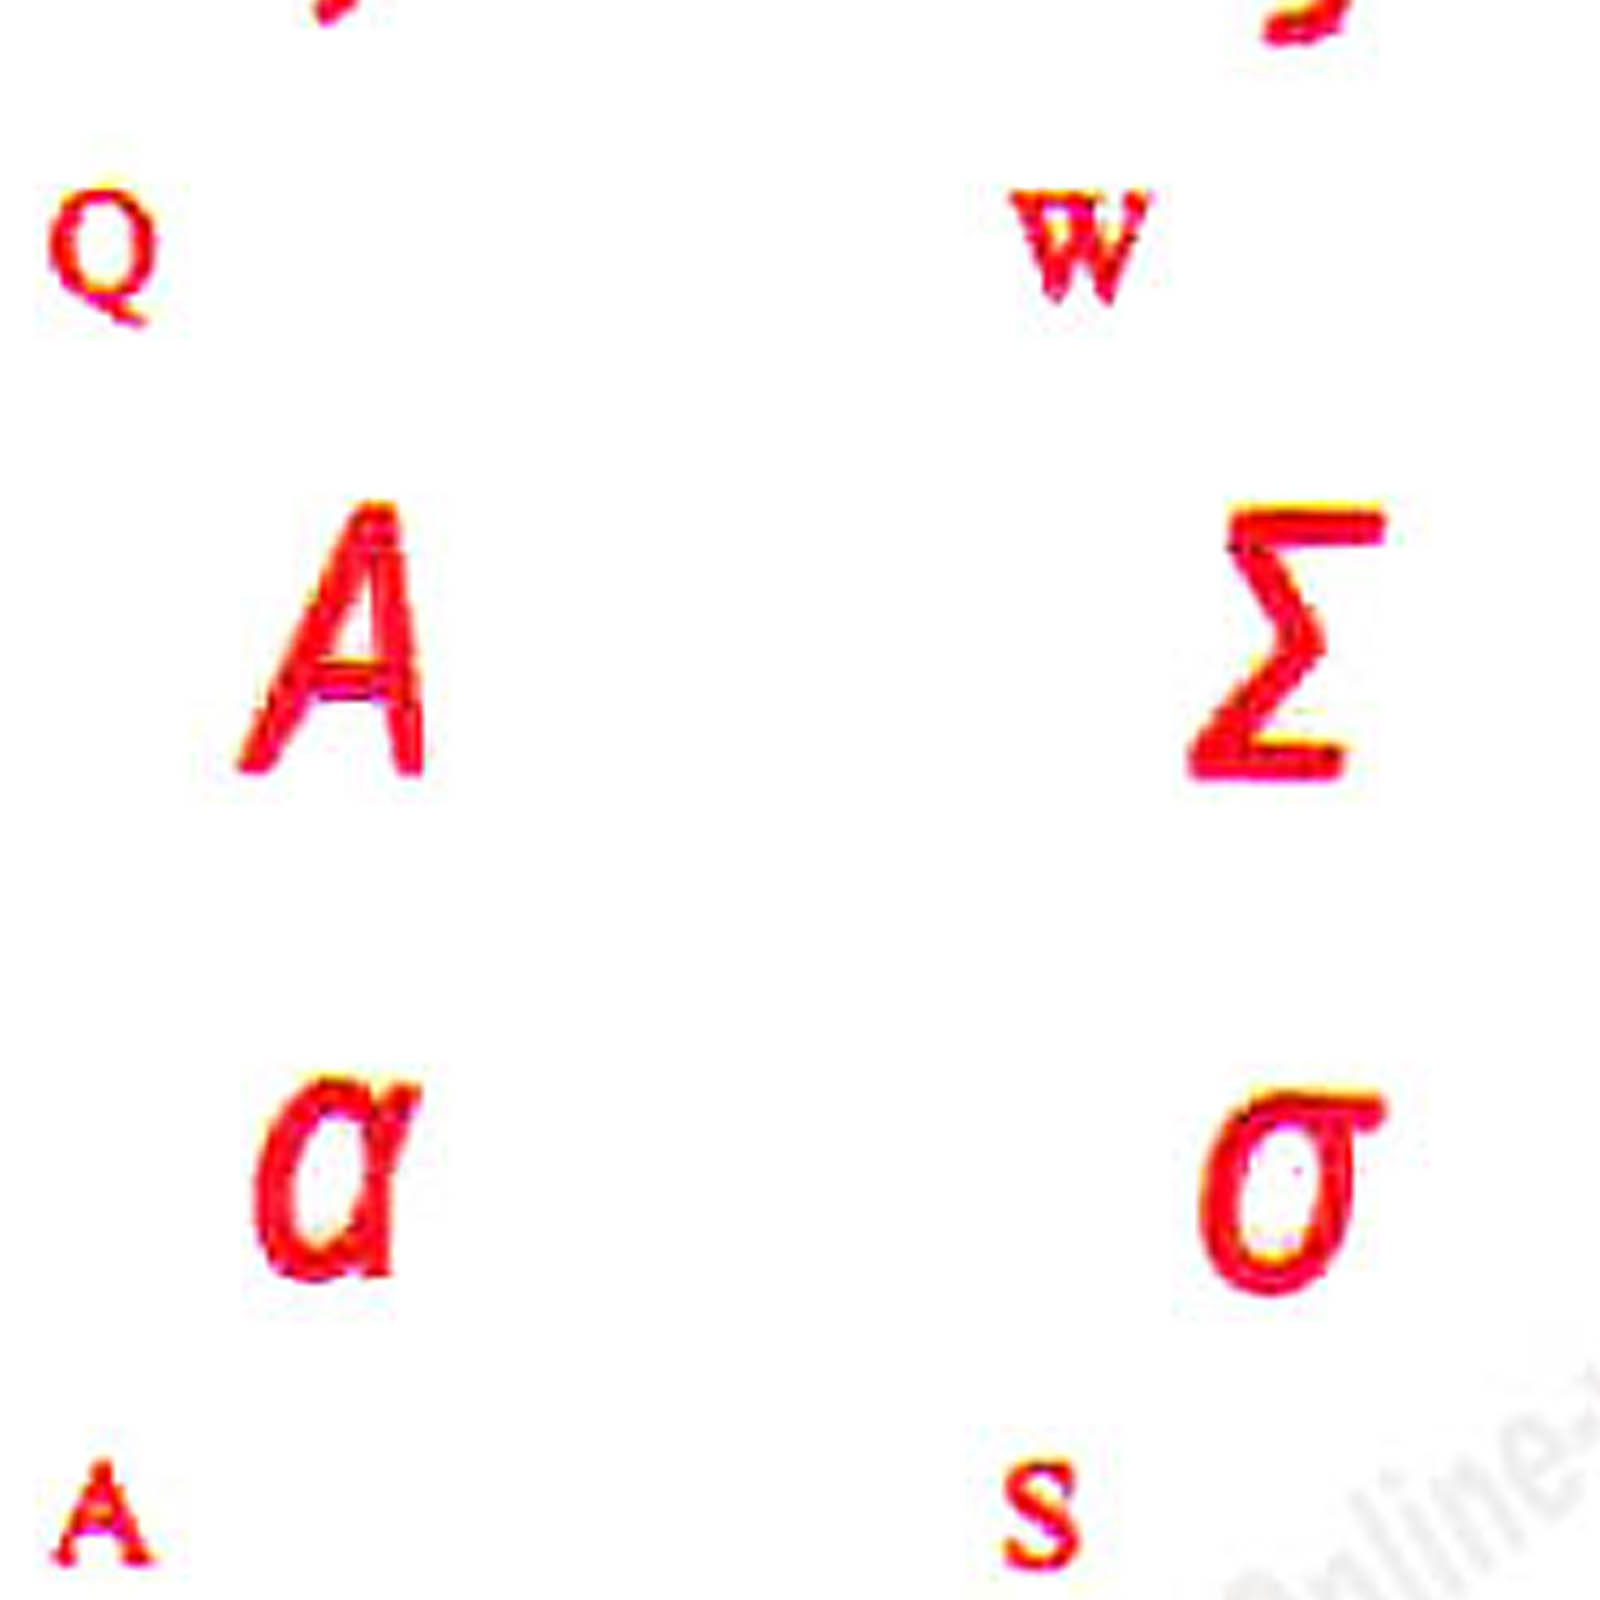 GREEK STICKERS KEYBOARD RED LETTERS TRANSPARENT BACKGROUND